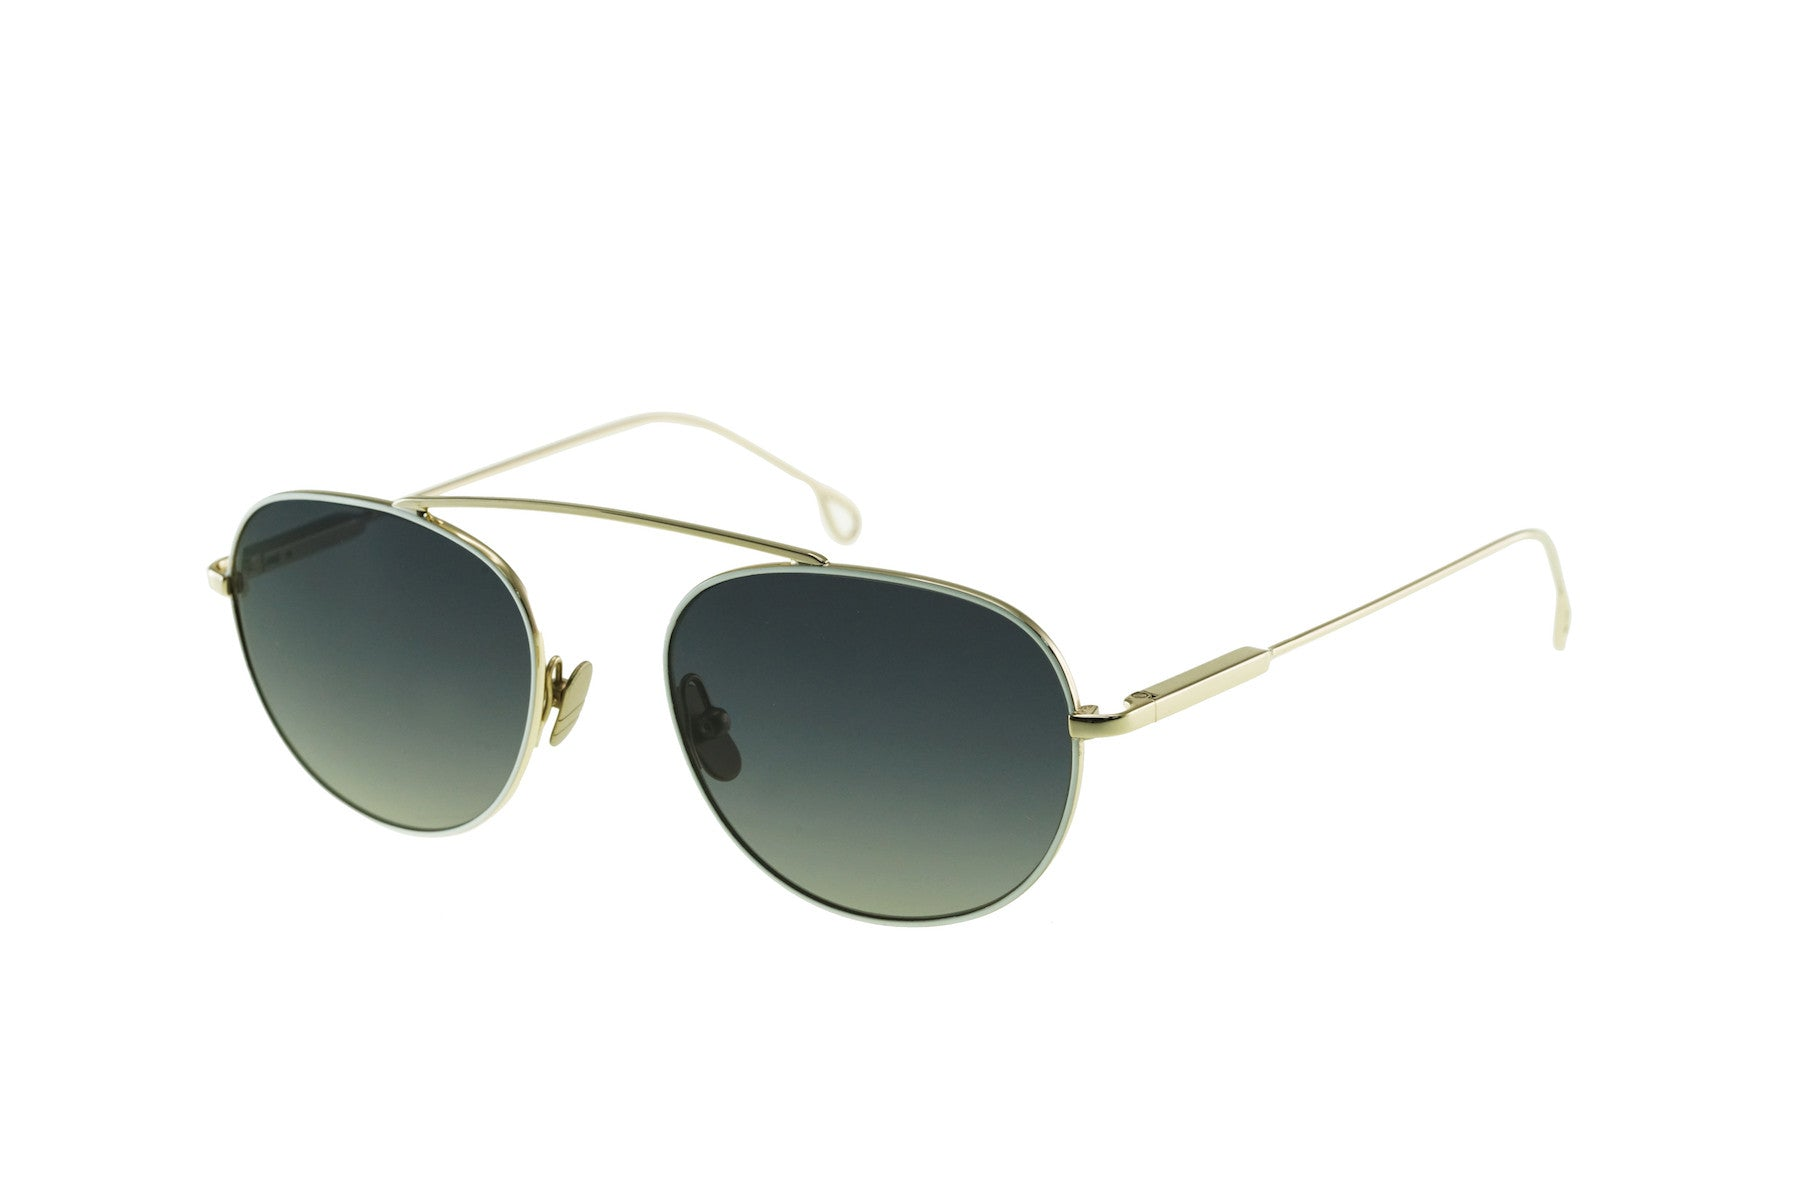 Ocean 029 - Peppertint - Designer sunglasses